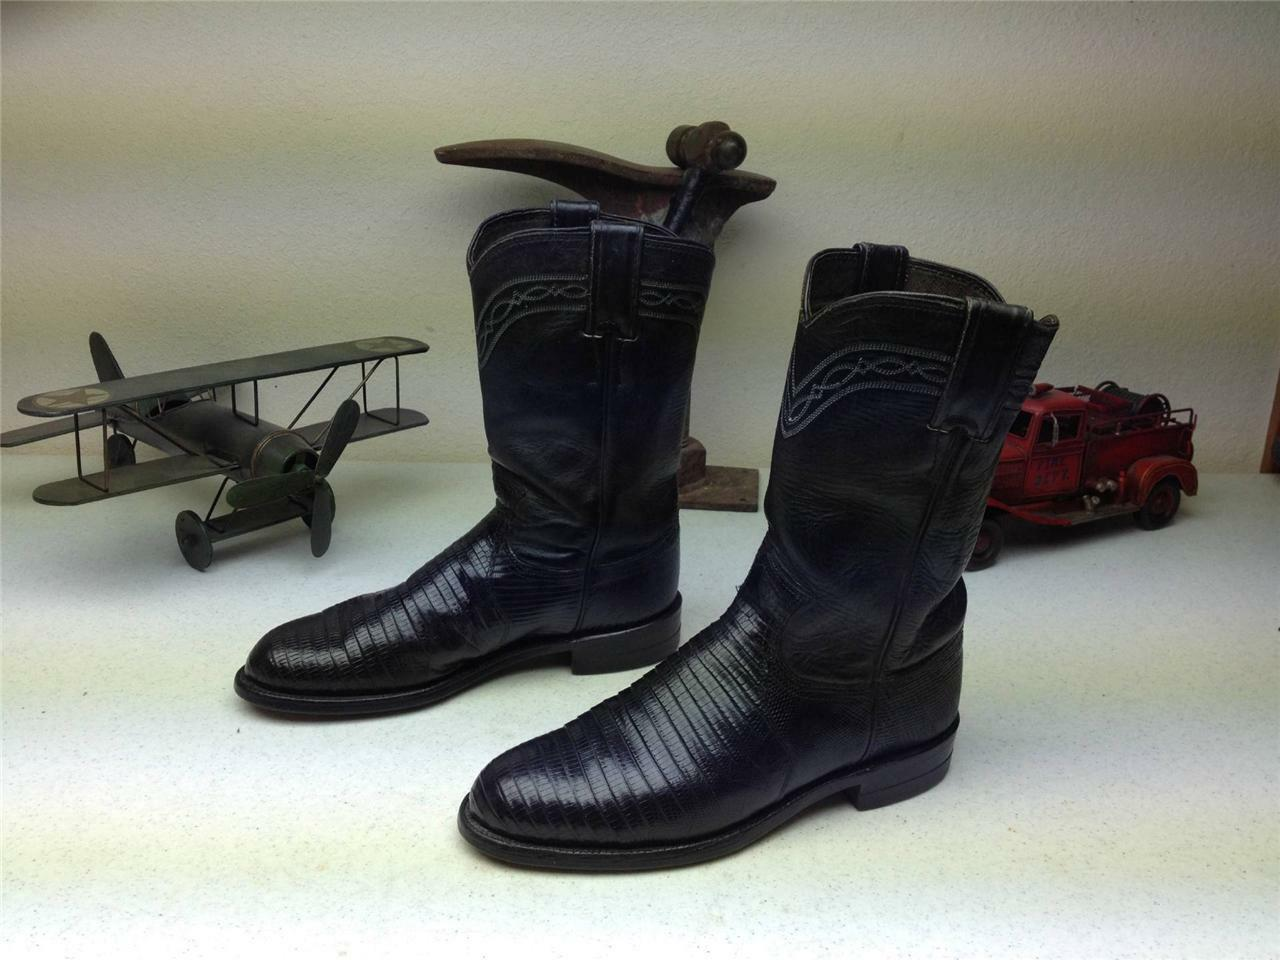 JUSTIN STYLE 3733 BLACK LIZARD LEATHER WESTERN COWBOY ROPER BOOTS SIZE 6 C